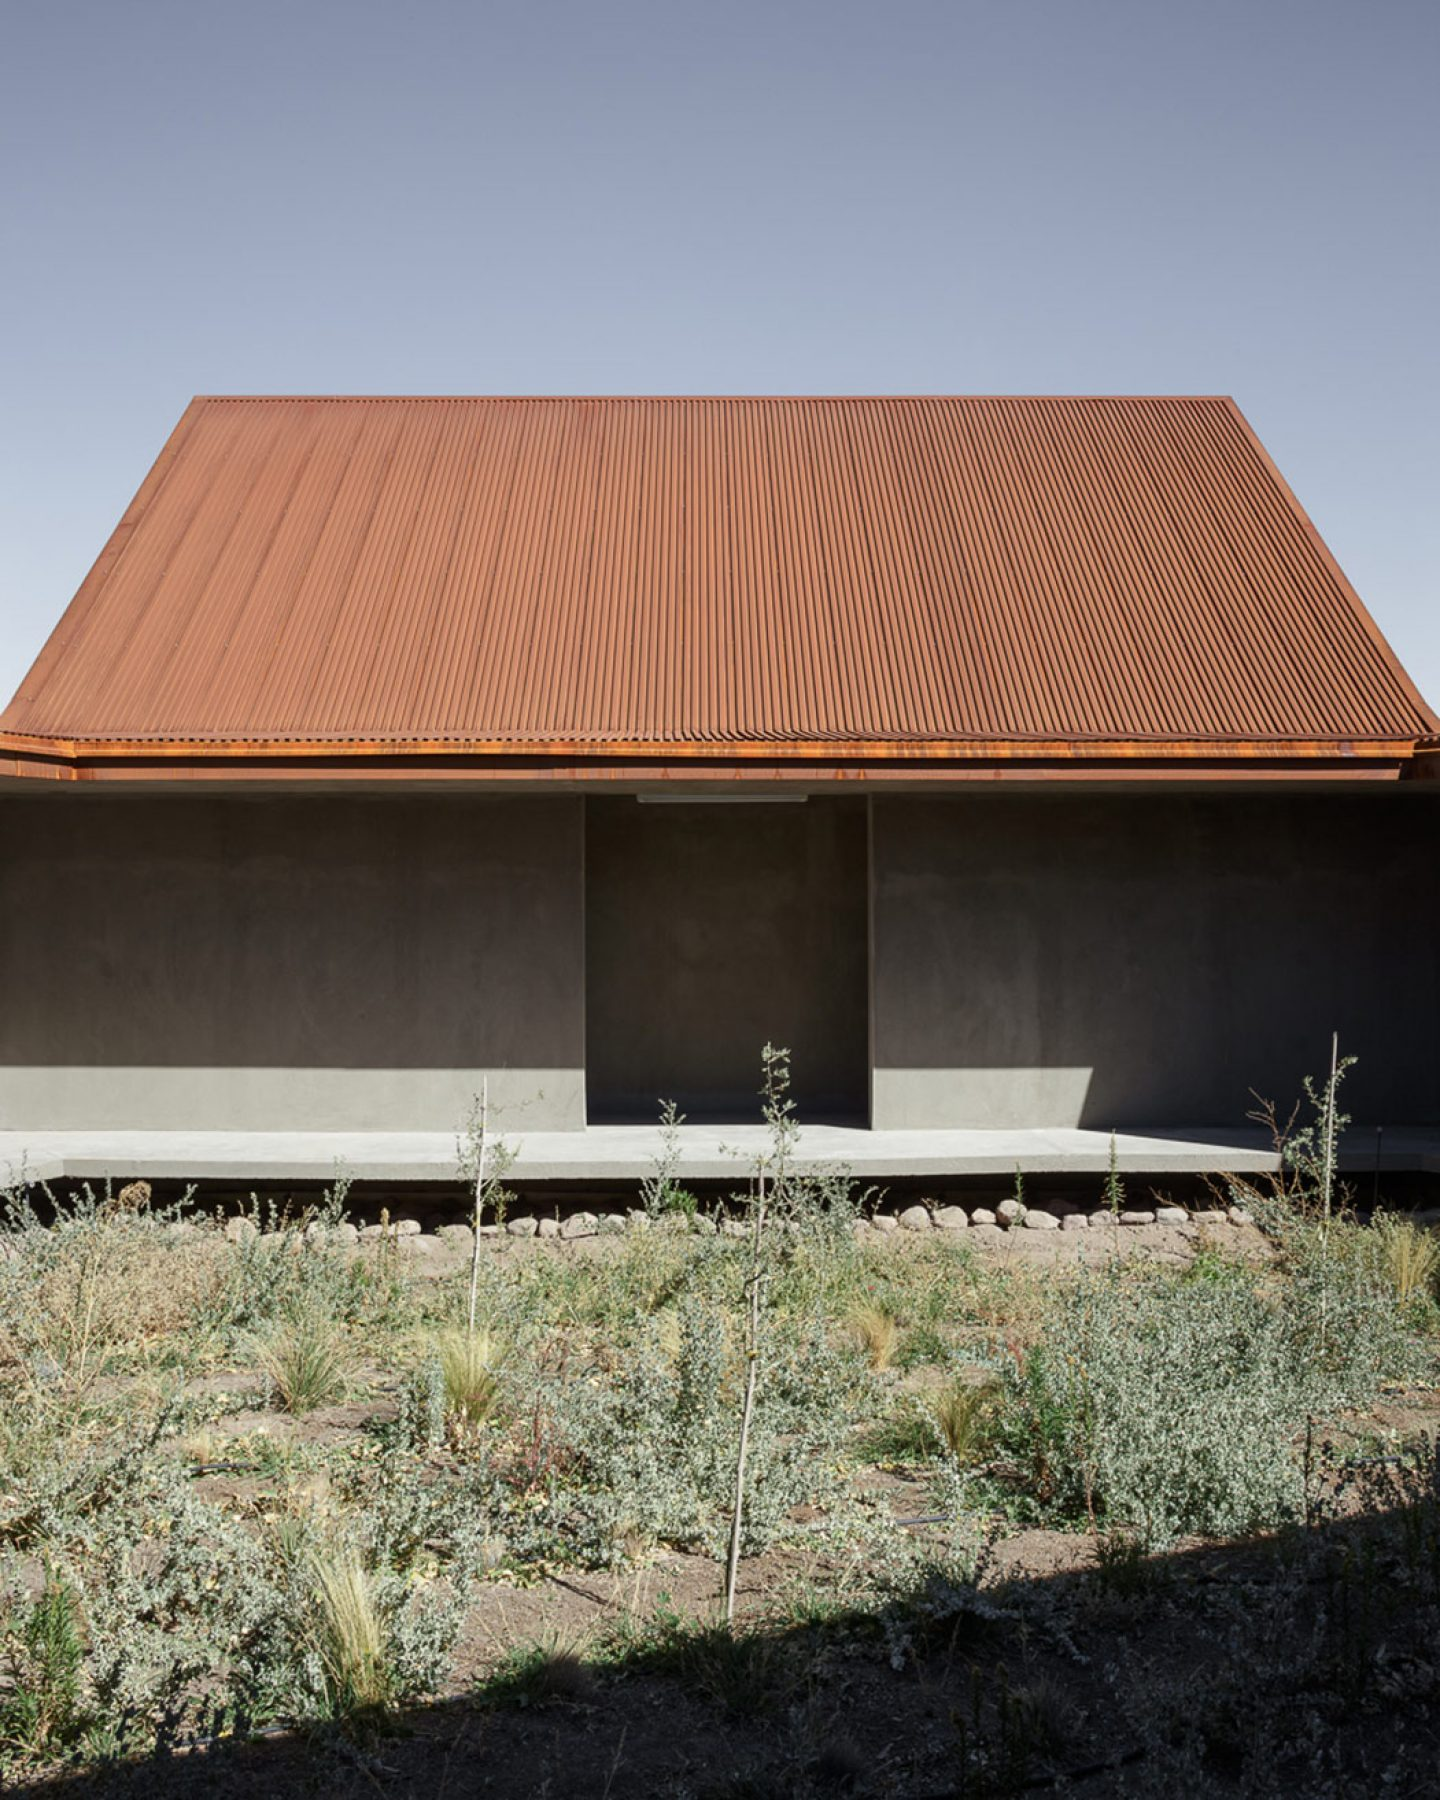 iGNANT-Architecture-Desert-Interpretation-Center-Emilio-Marin-Juan-Carlos-Lopez-5